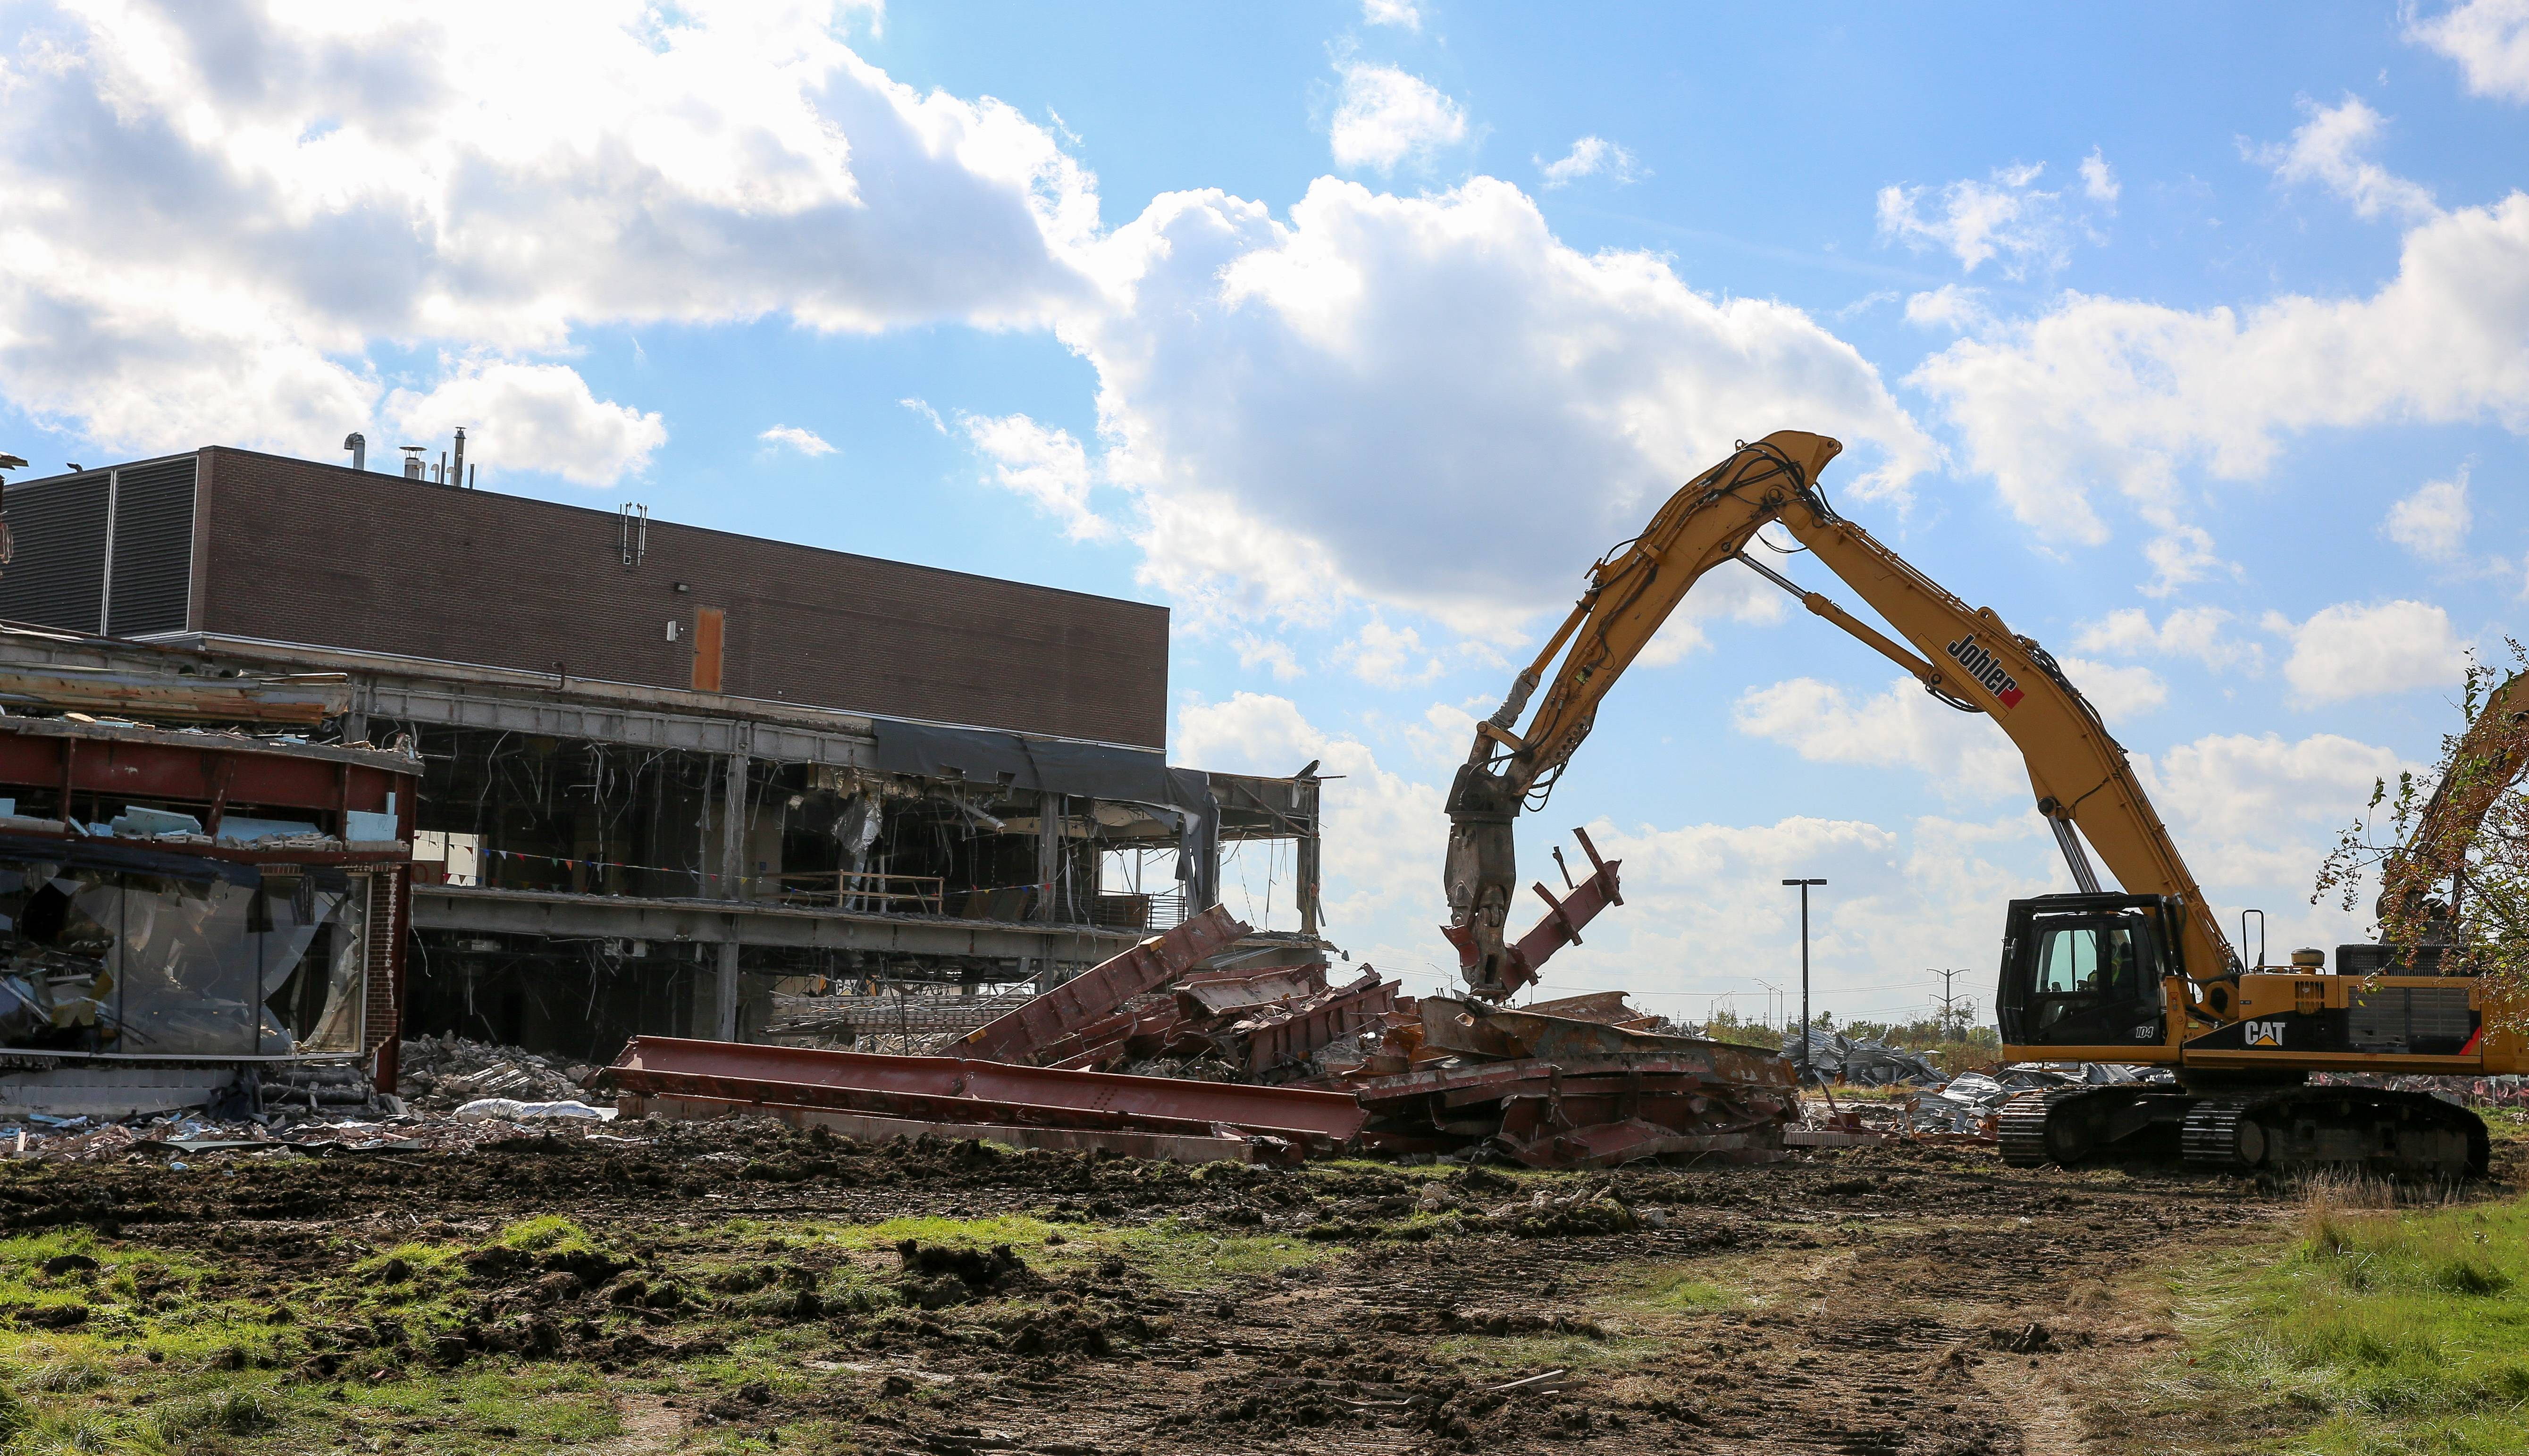 Workers demolish Motorola Solutions' former Galvin Center in Schaumburg to make way for an already approved Topgolf entertainment venue nearby and other future buildings on 225 acres of the onetime corporate campus.